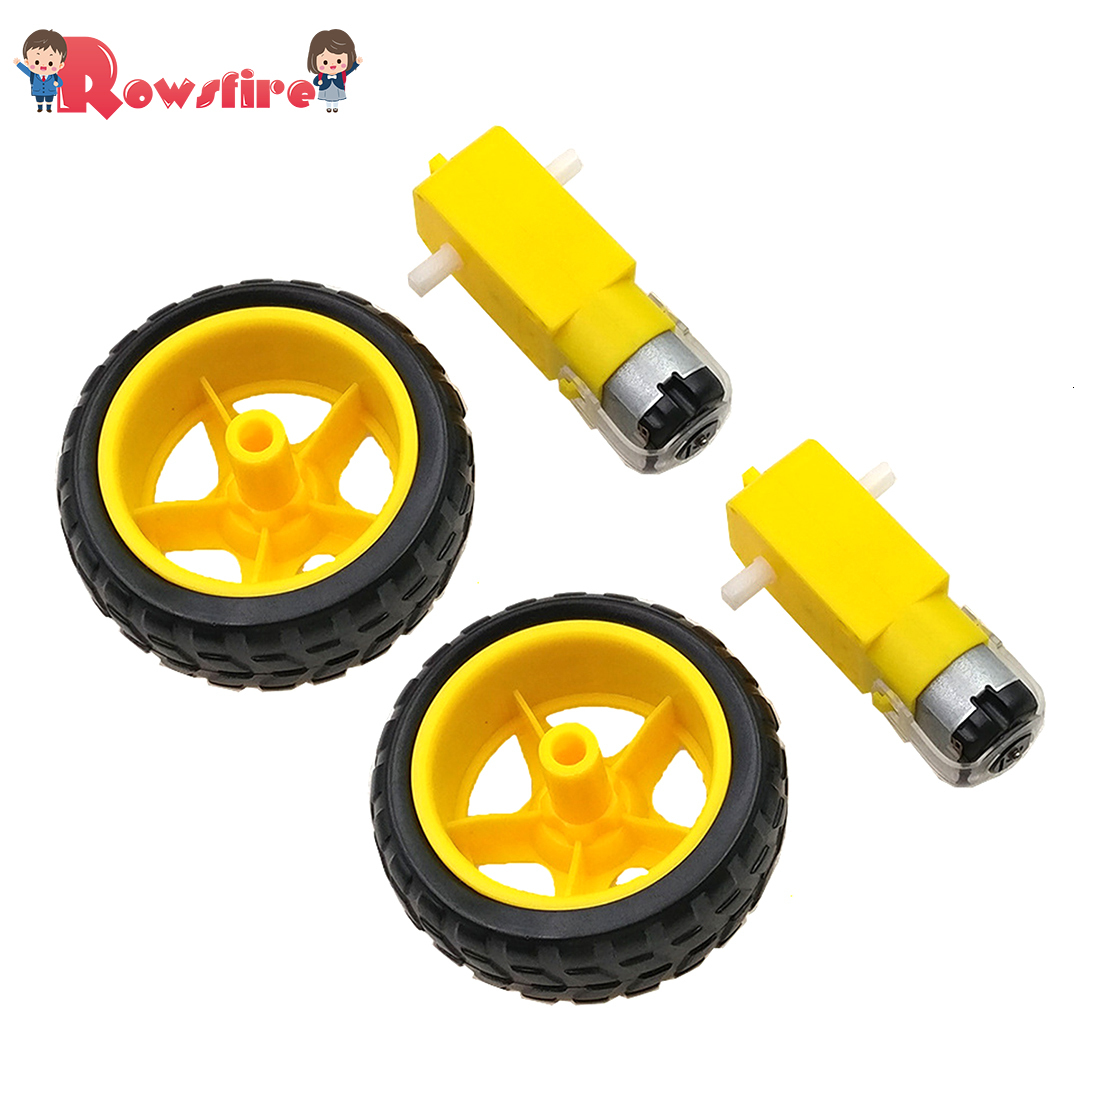 2Pcs Small Smart Car Tyres Wheel Robot Chassis Kit With DC Speed Reduction Motor